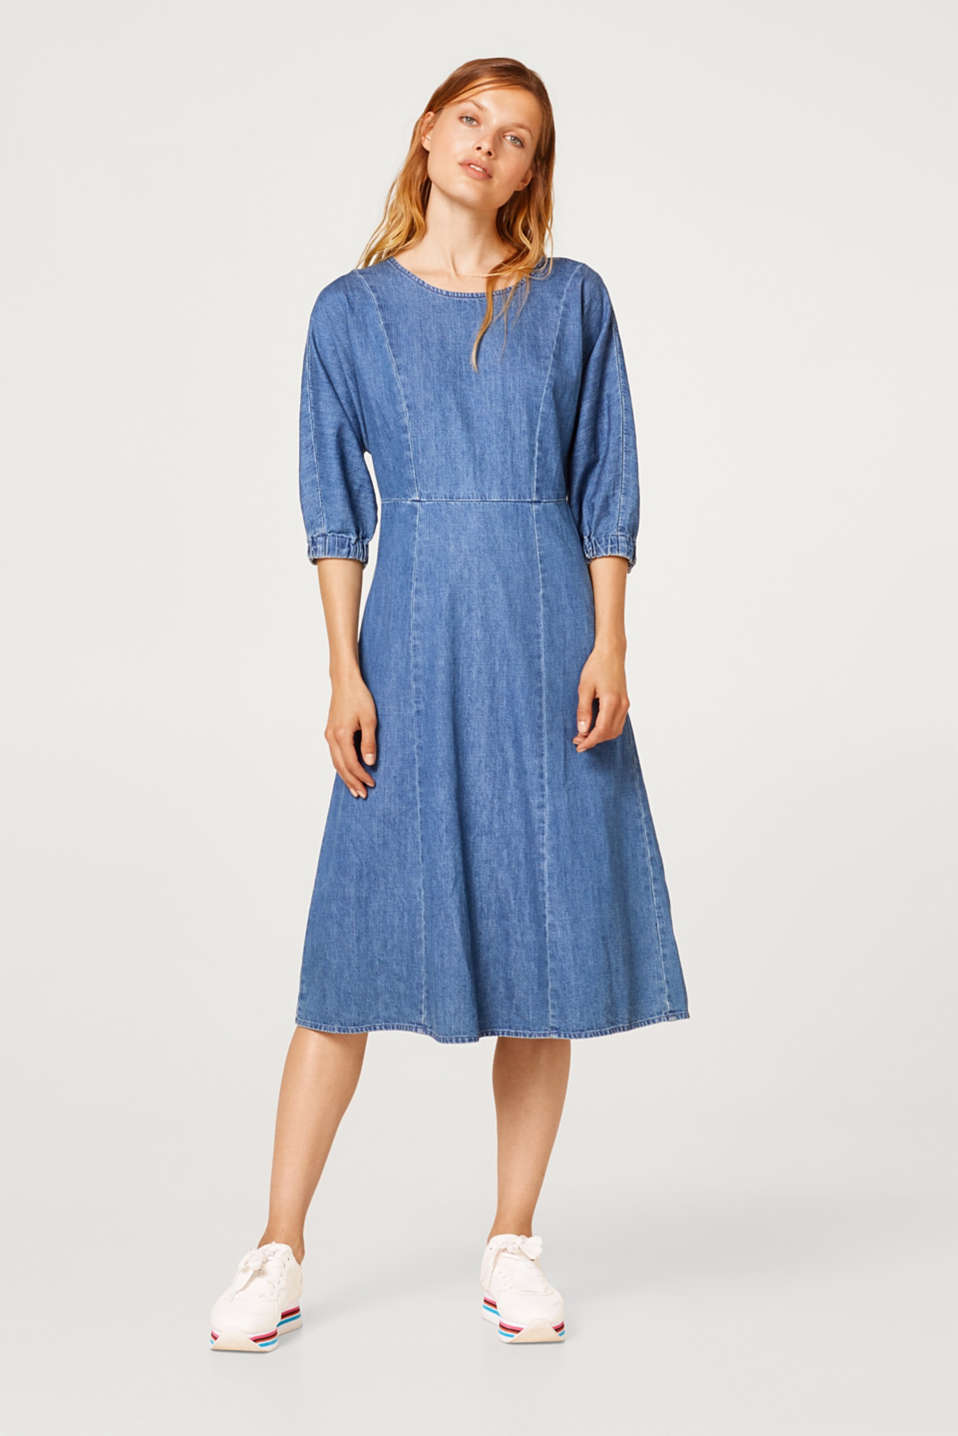 Denim dress in midi length, 100% cotton